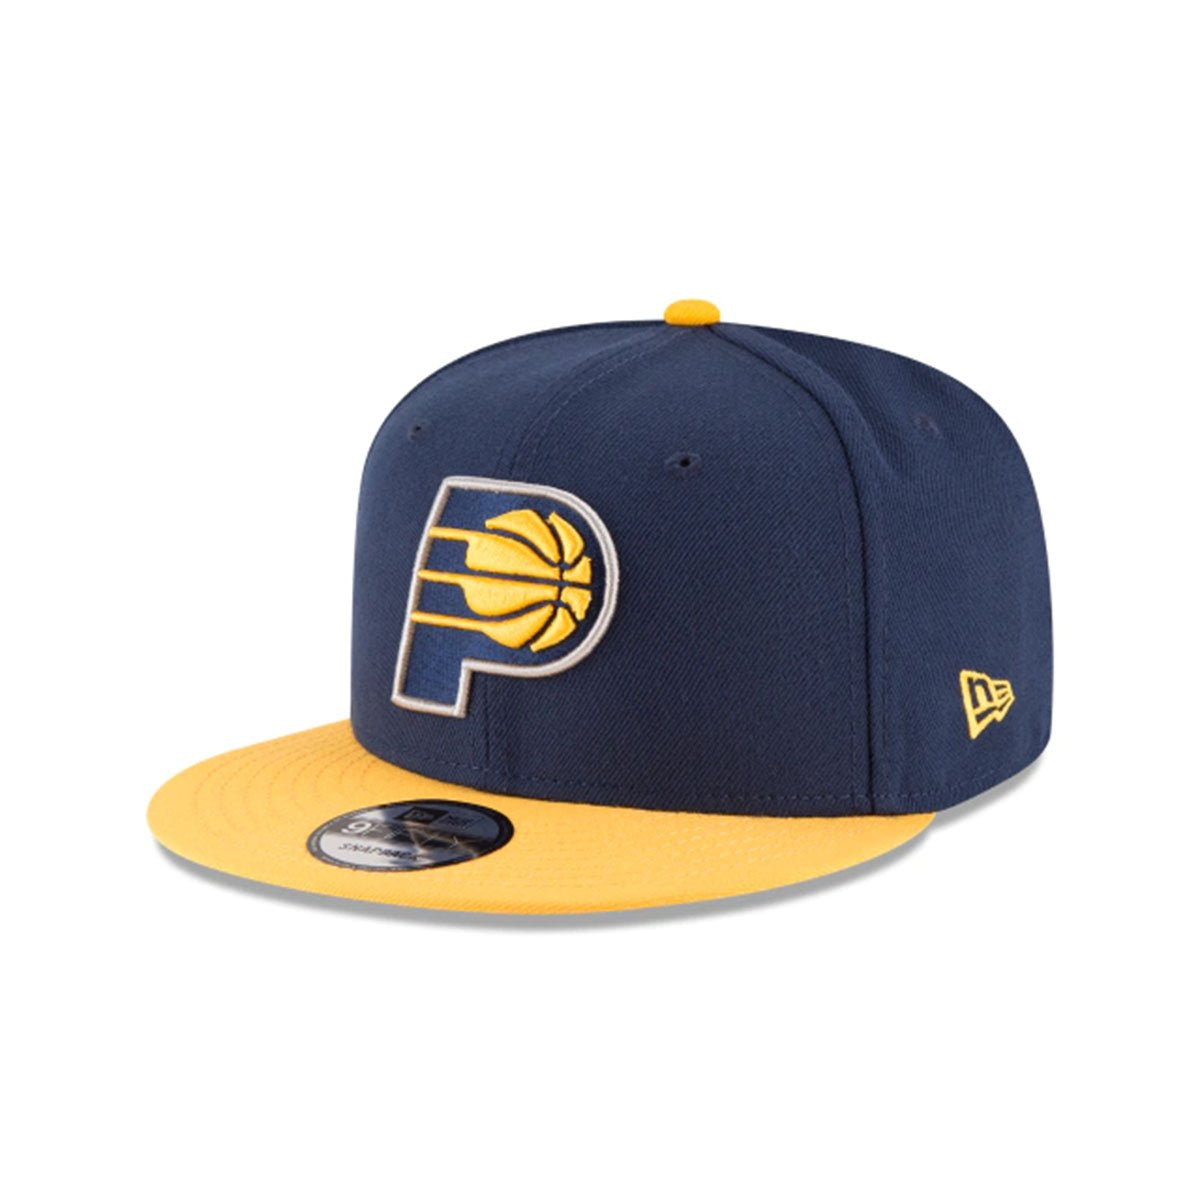 INDIANA PACERS 2TONE 9FIFTY SNAPBACK NAVY/YELLOW